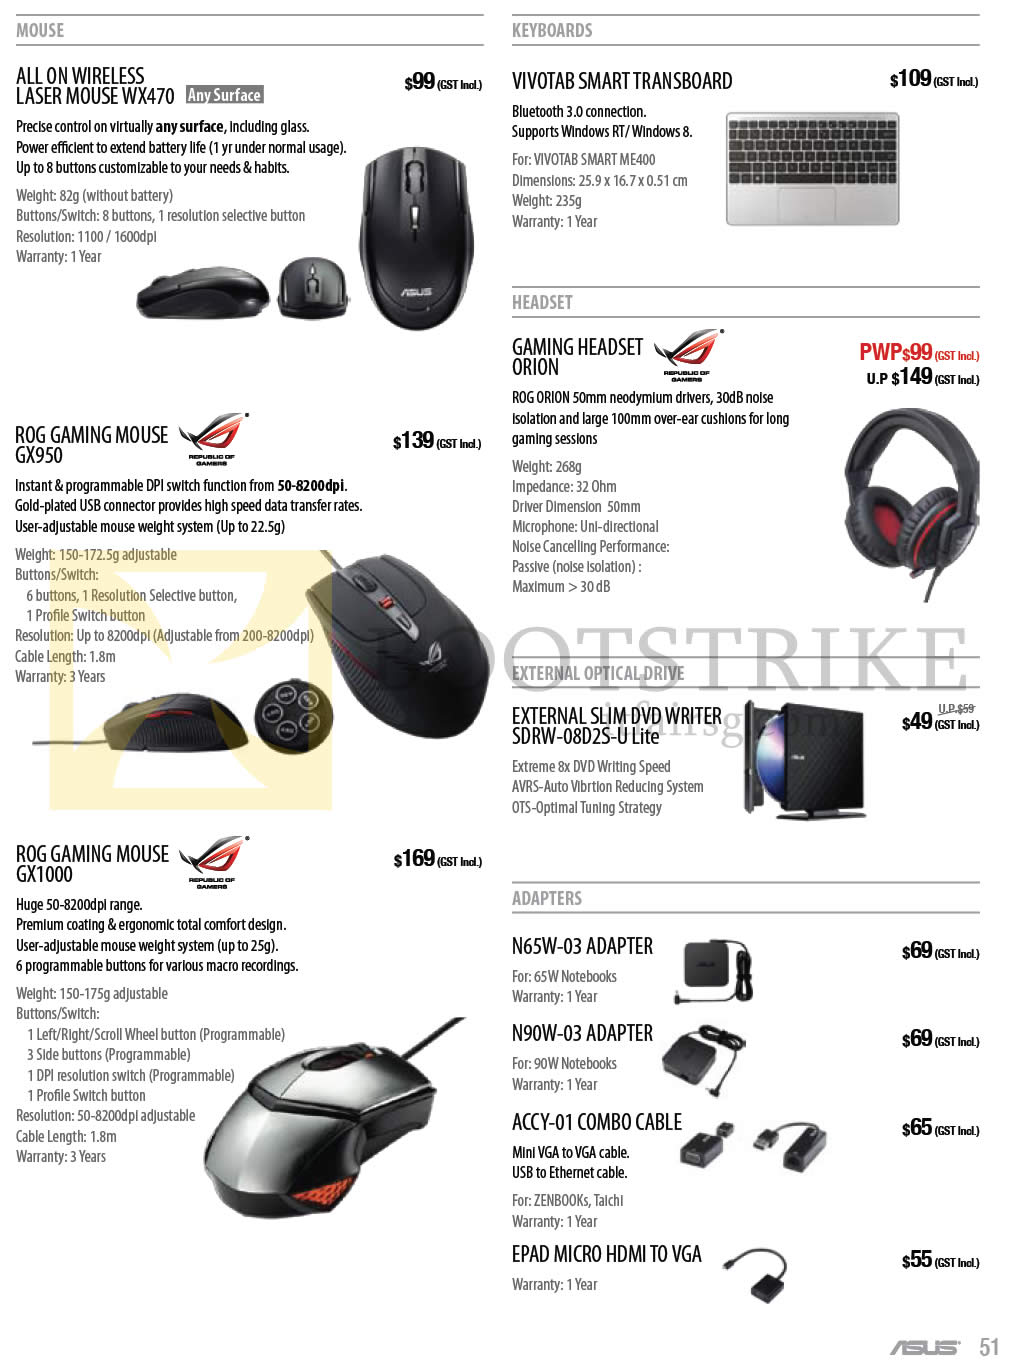 COMEX 2013 price list image brochure of ASUS Notebooks Accessories Mouse WX470, ROG GX950, GX1000, Orion Headset, External Optical Drive, Adapters